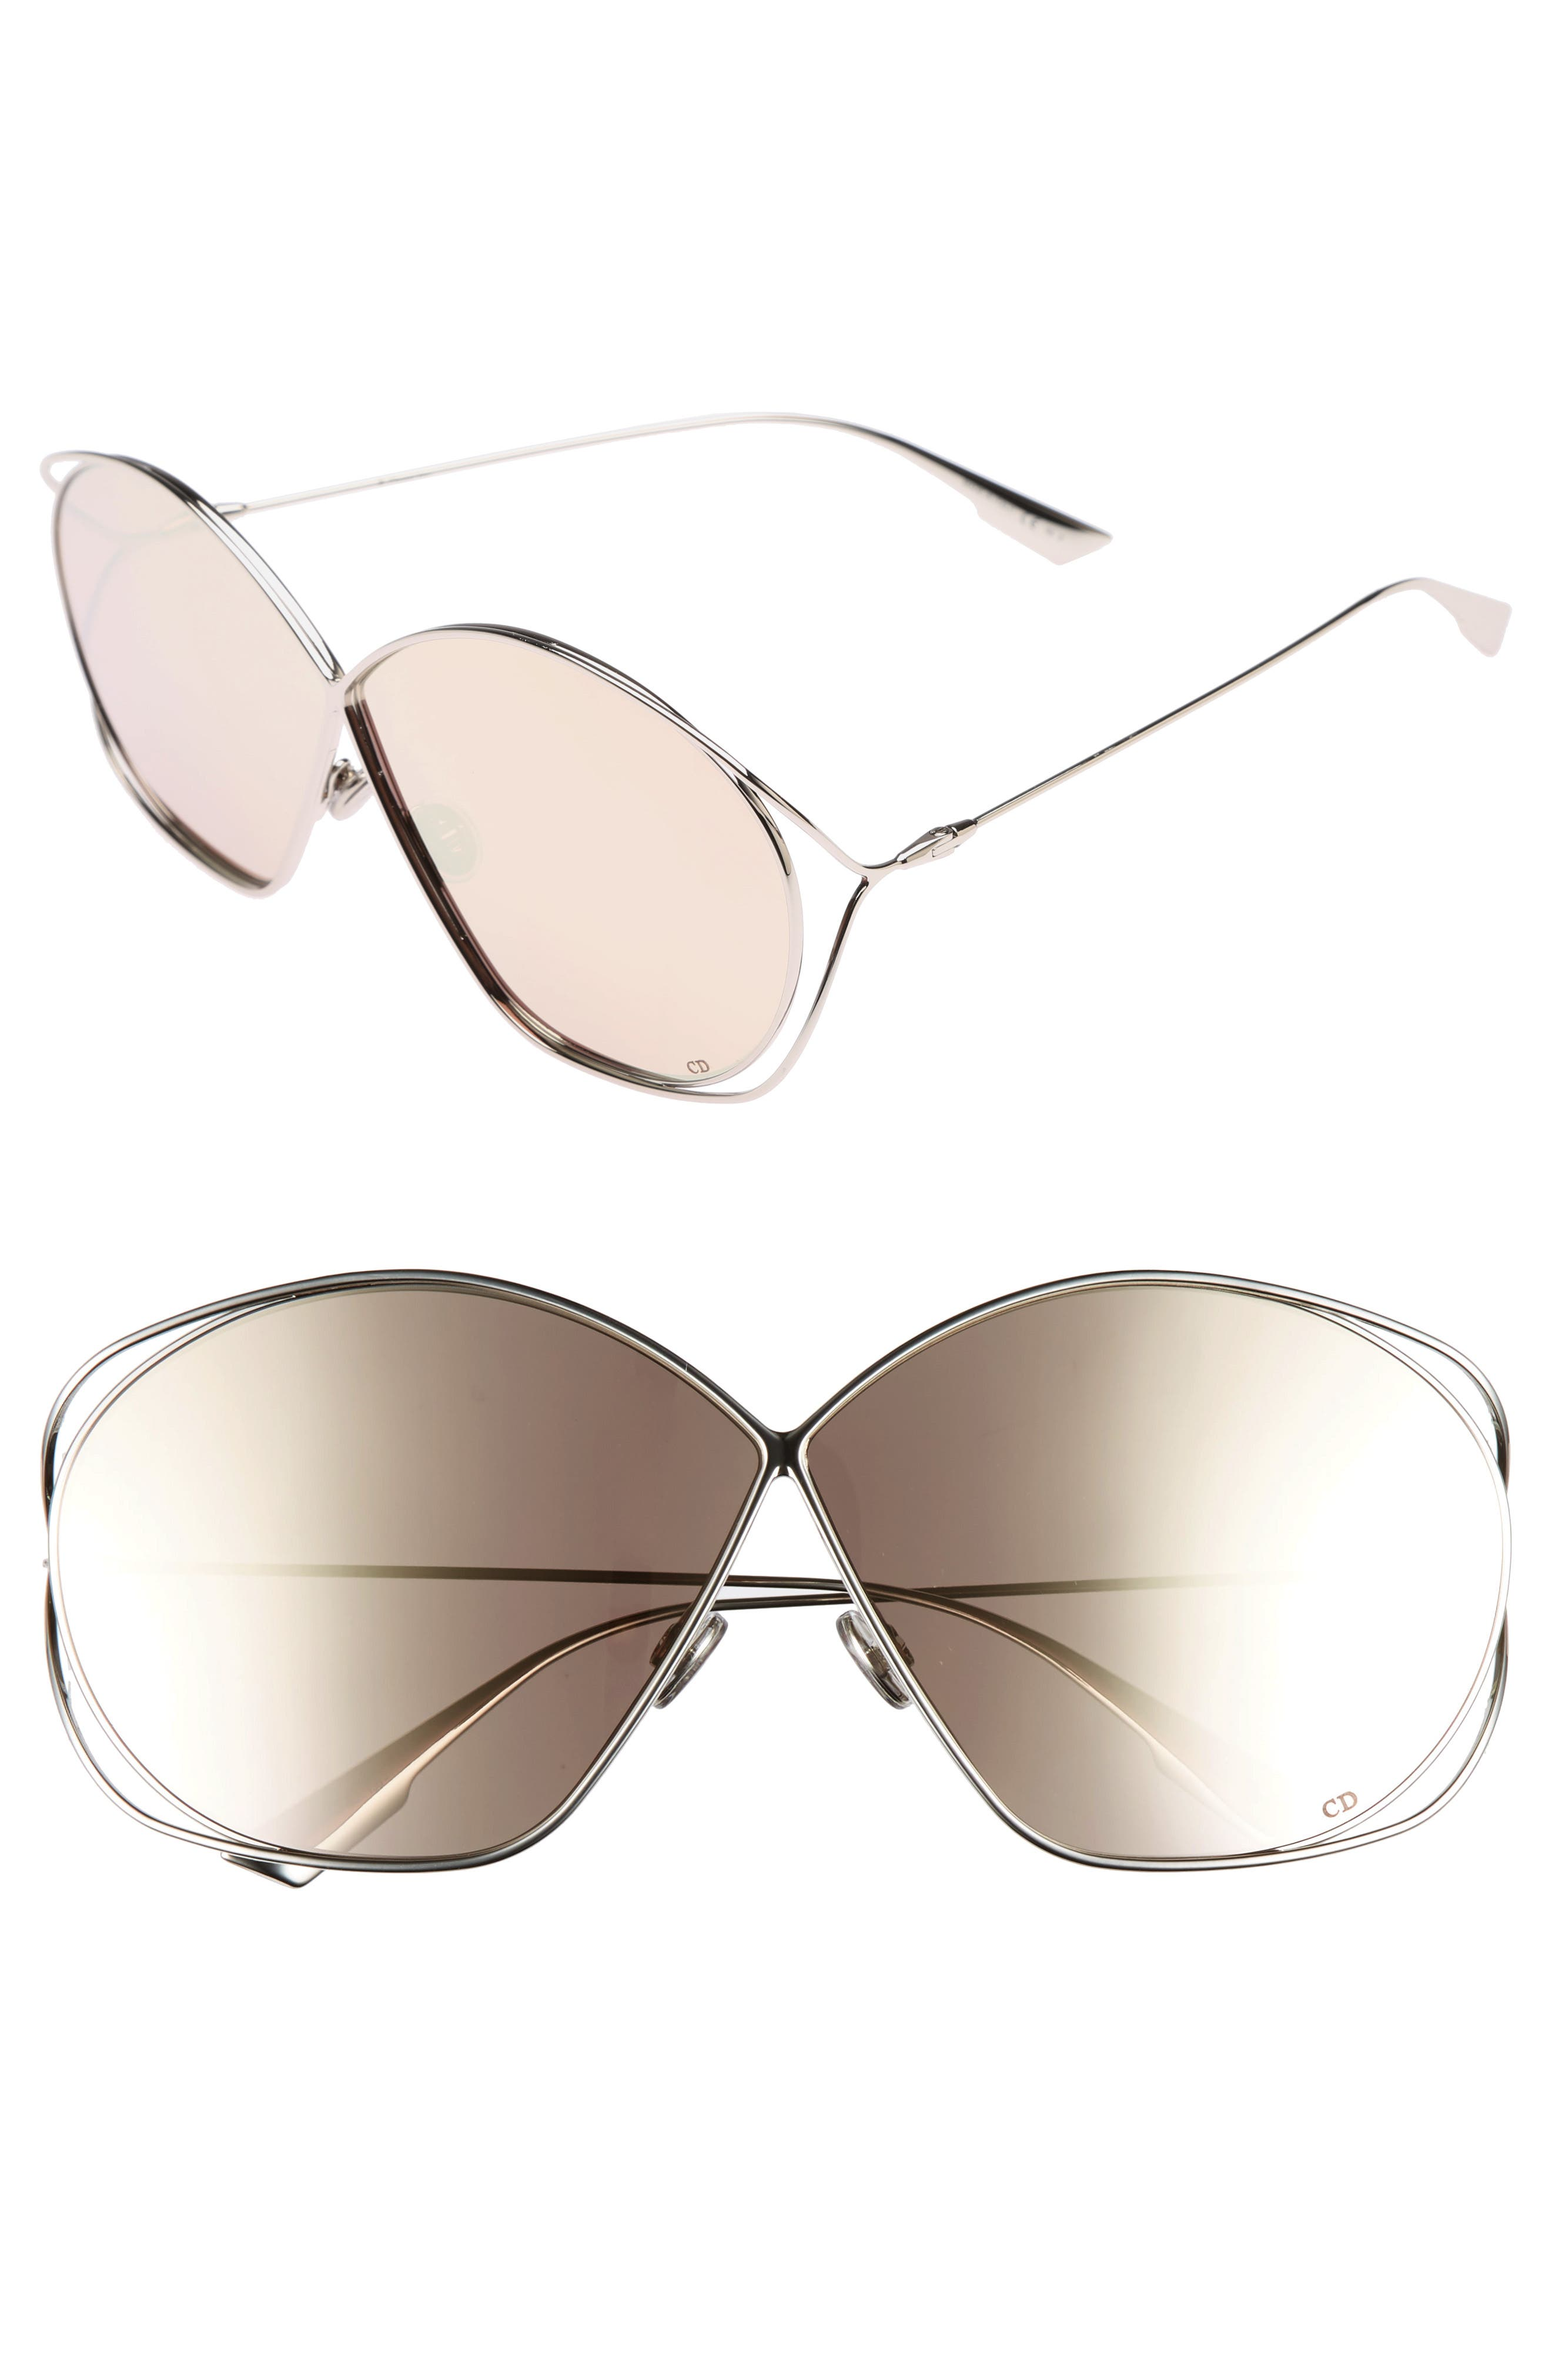 Stellaire 2 68mm Oversize Butterfly Sunglasses,                         Main,                         color, Palladium